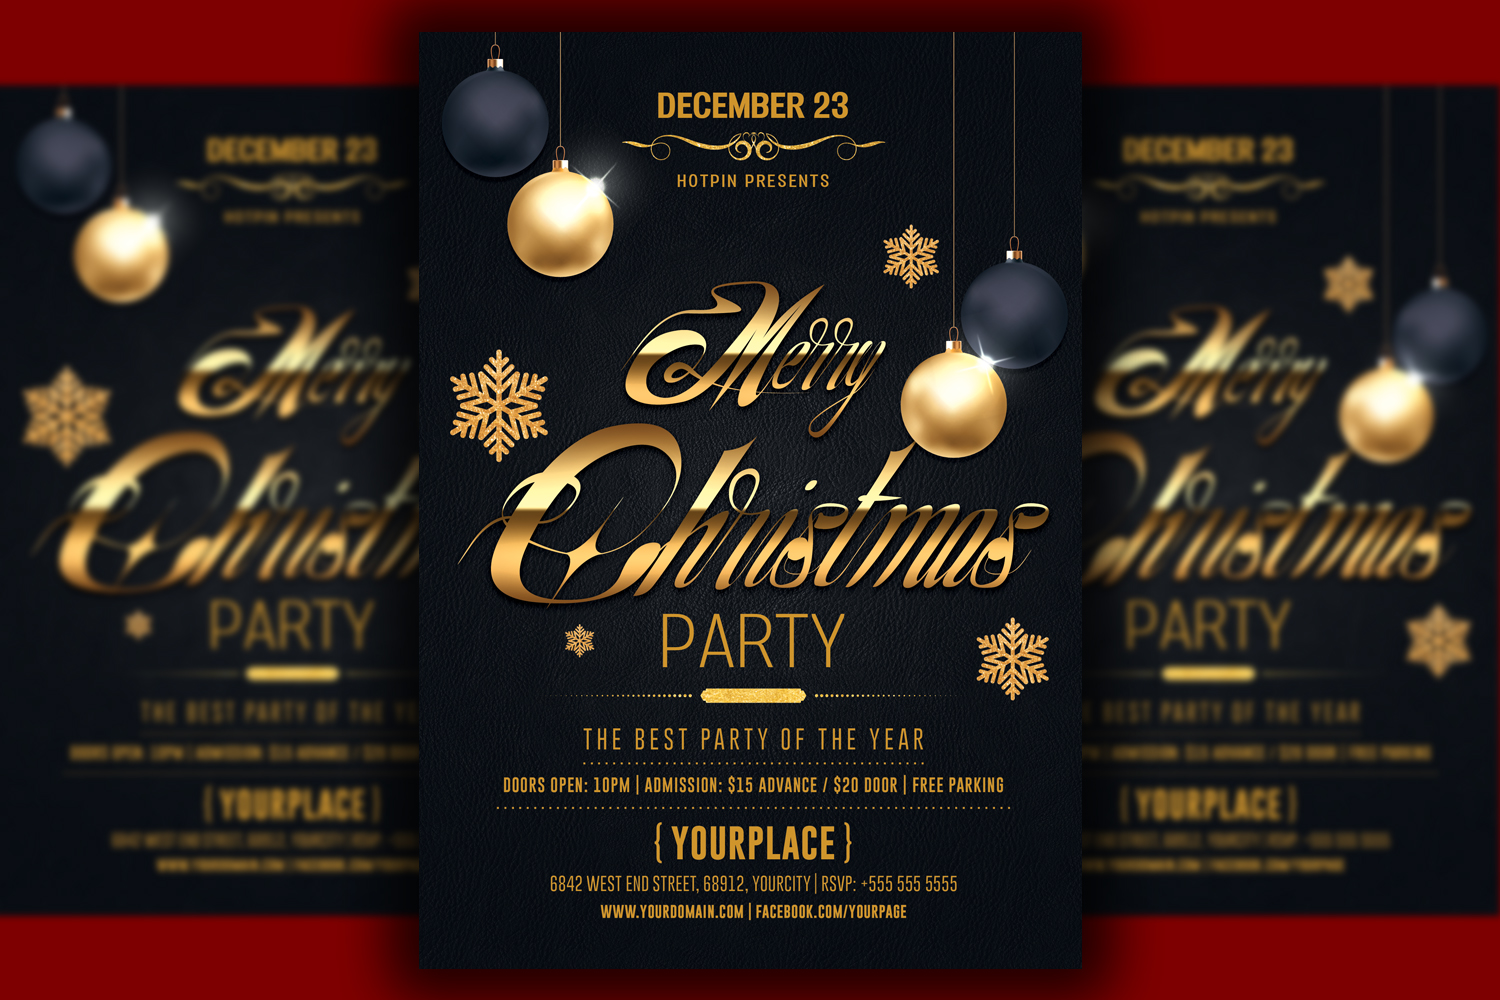 Classy Christmas Party Flyer Template example image 1